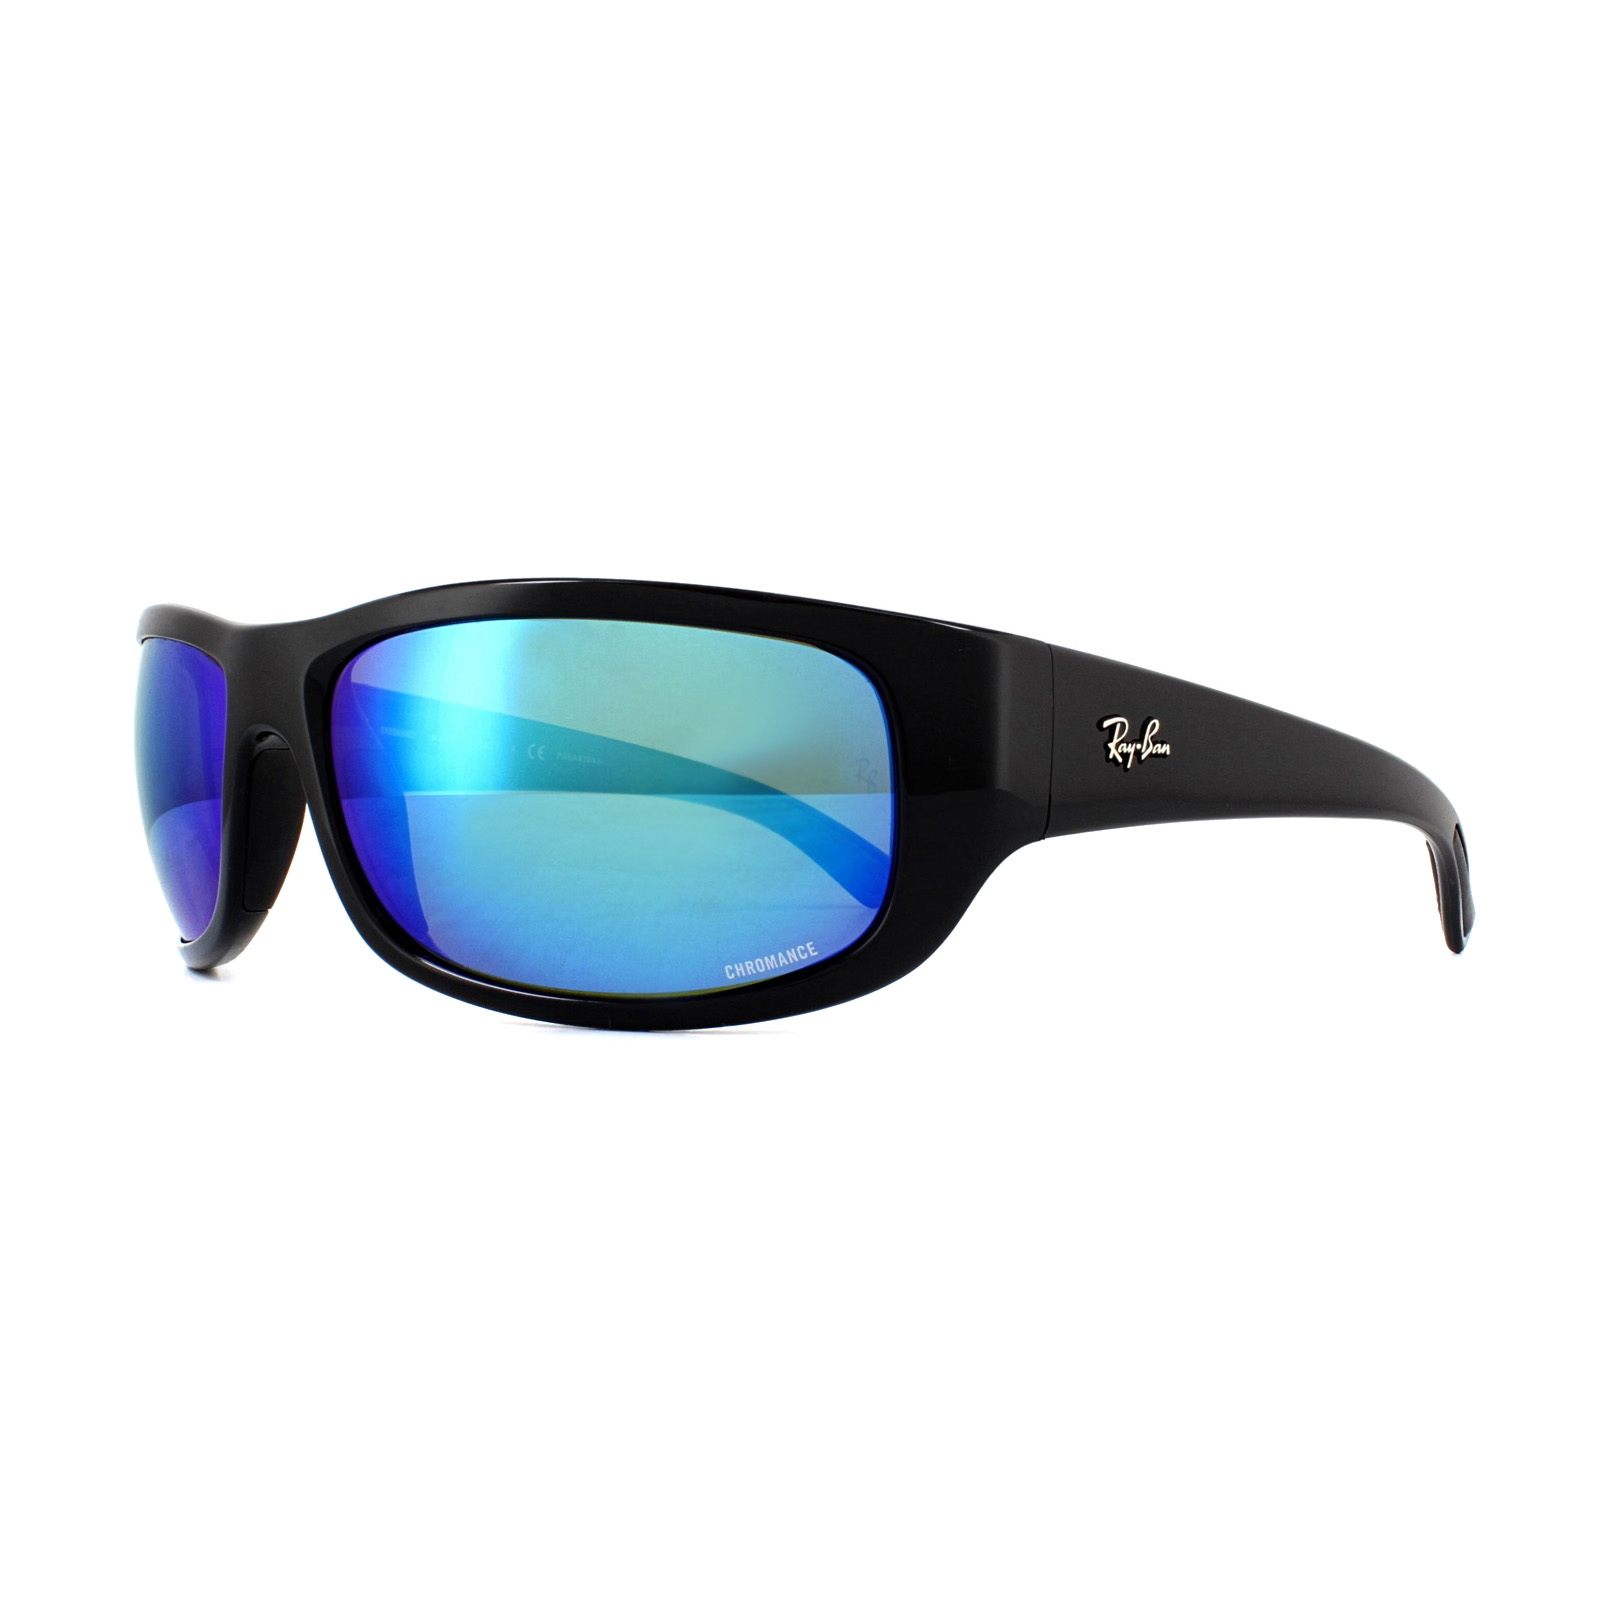 b1b4dfea18 Sentinel Ray-Ban Sunglasses 4283CH Chromance 601 A1 Black Blue Mirror  Polarized